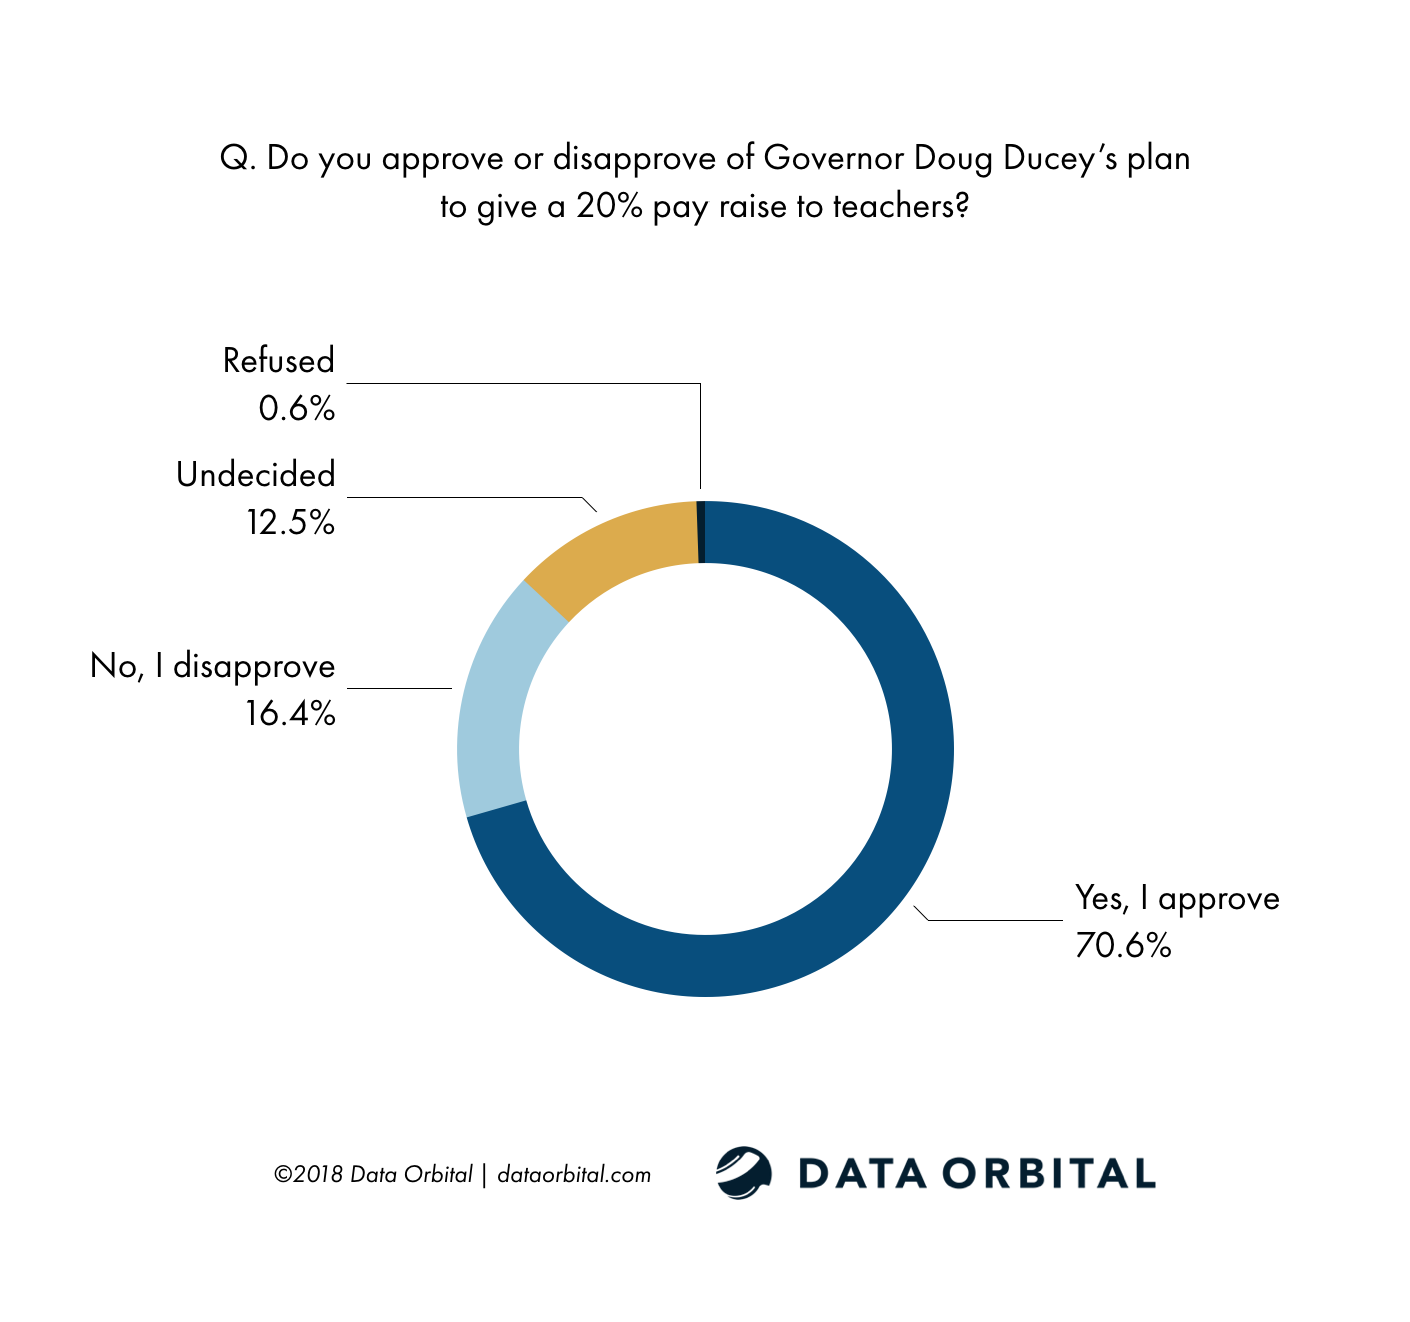 Data Orbital AZ Statewide Poll Do you approve or disapprove of Governor Doug Ducey's plan to give a 20% pay raise to teachers?